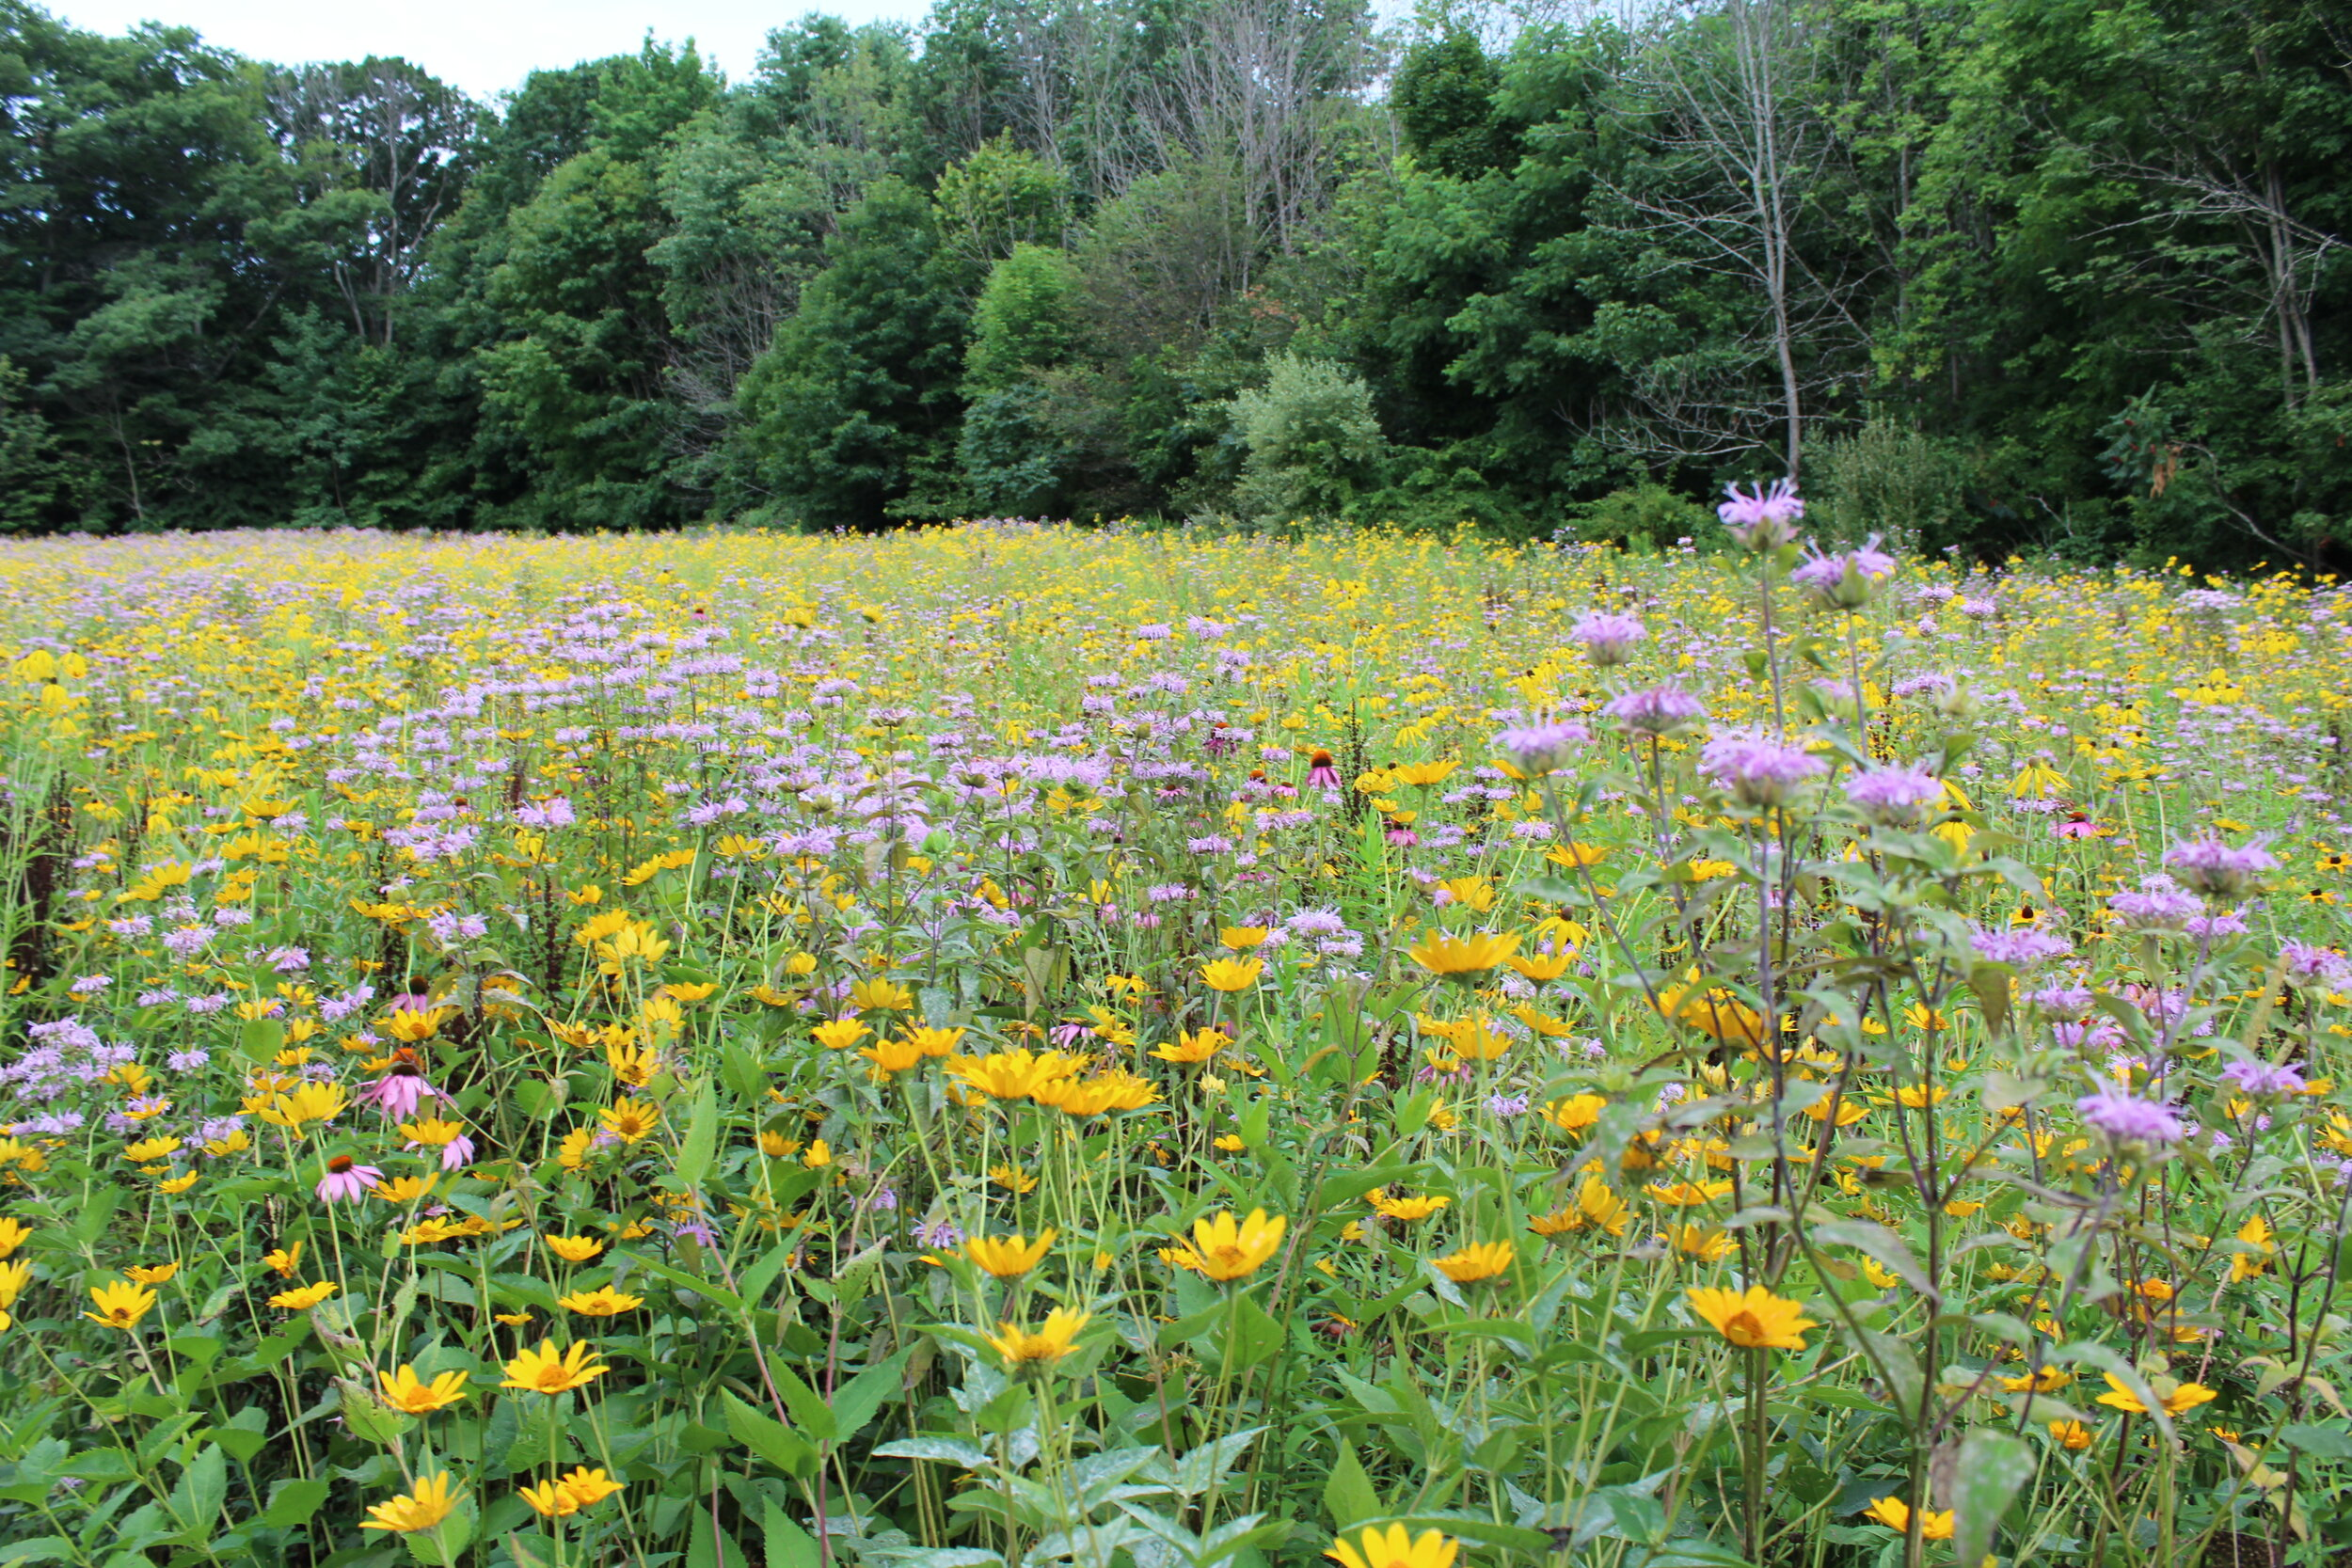 Year 3 Establishment - This planting provides critical habitat for monarchs and other pollinators.